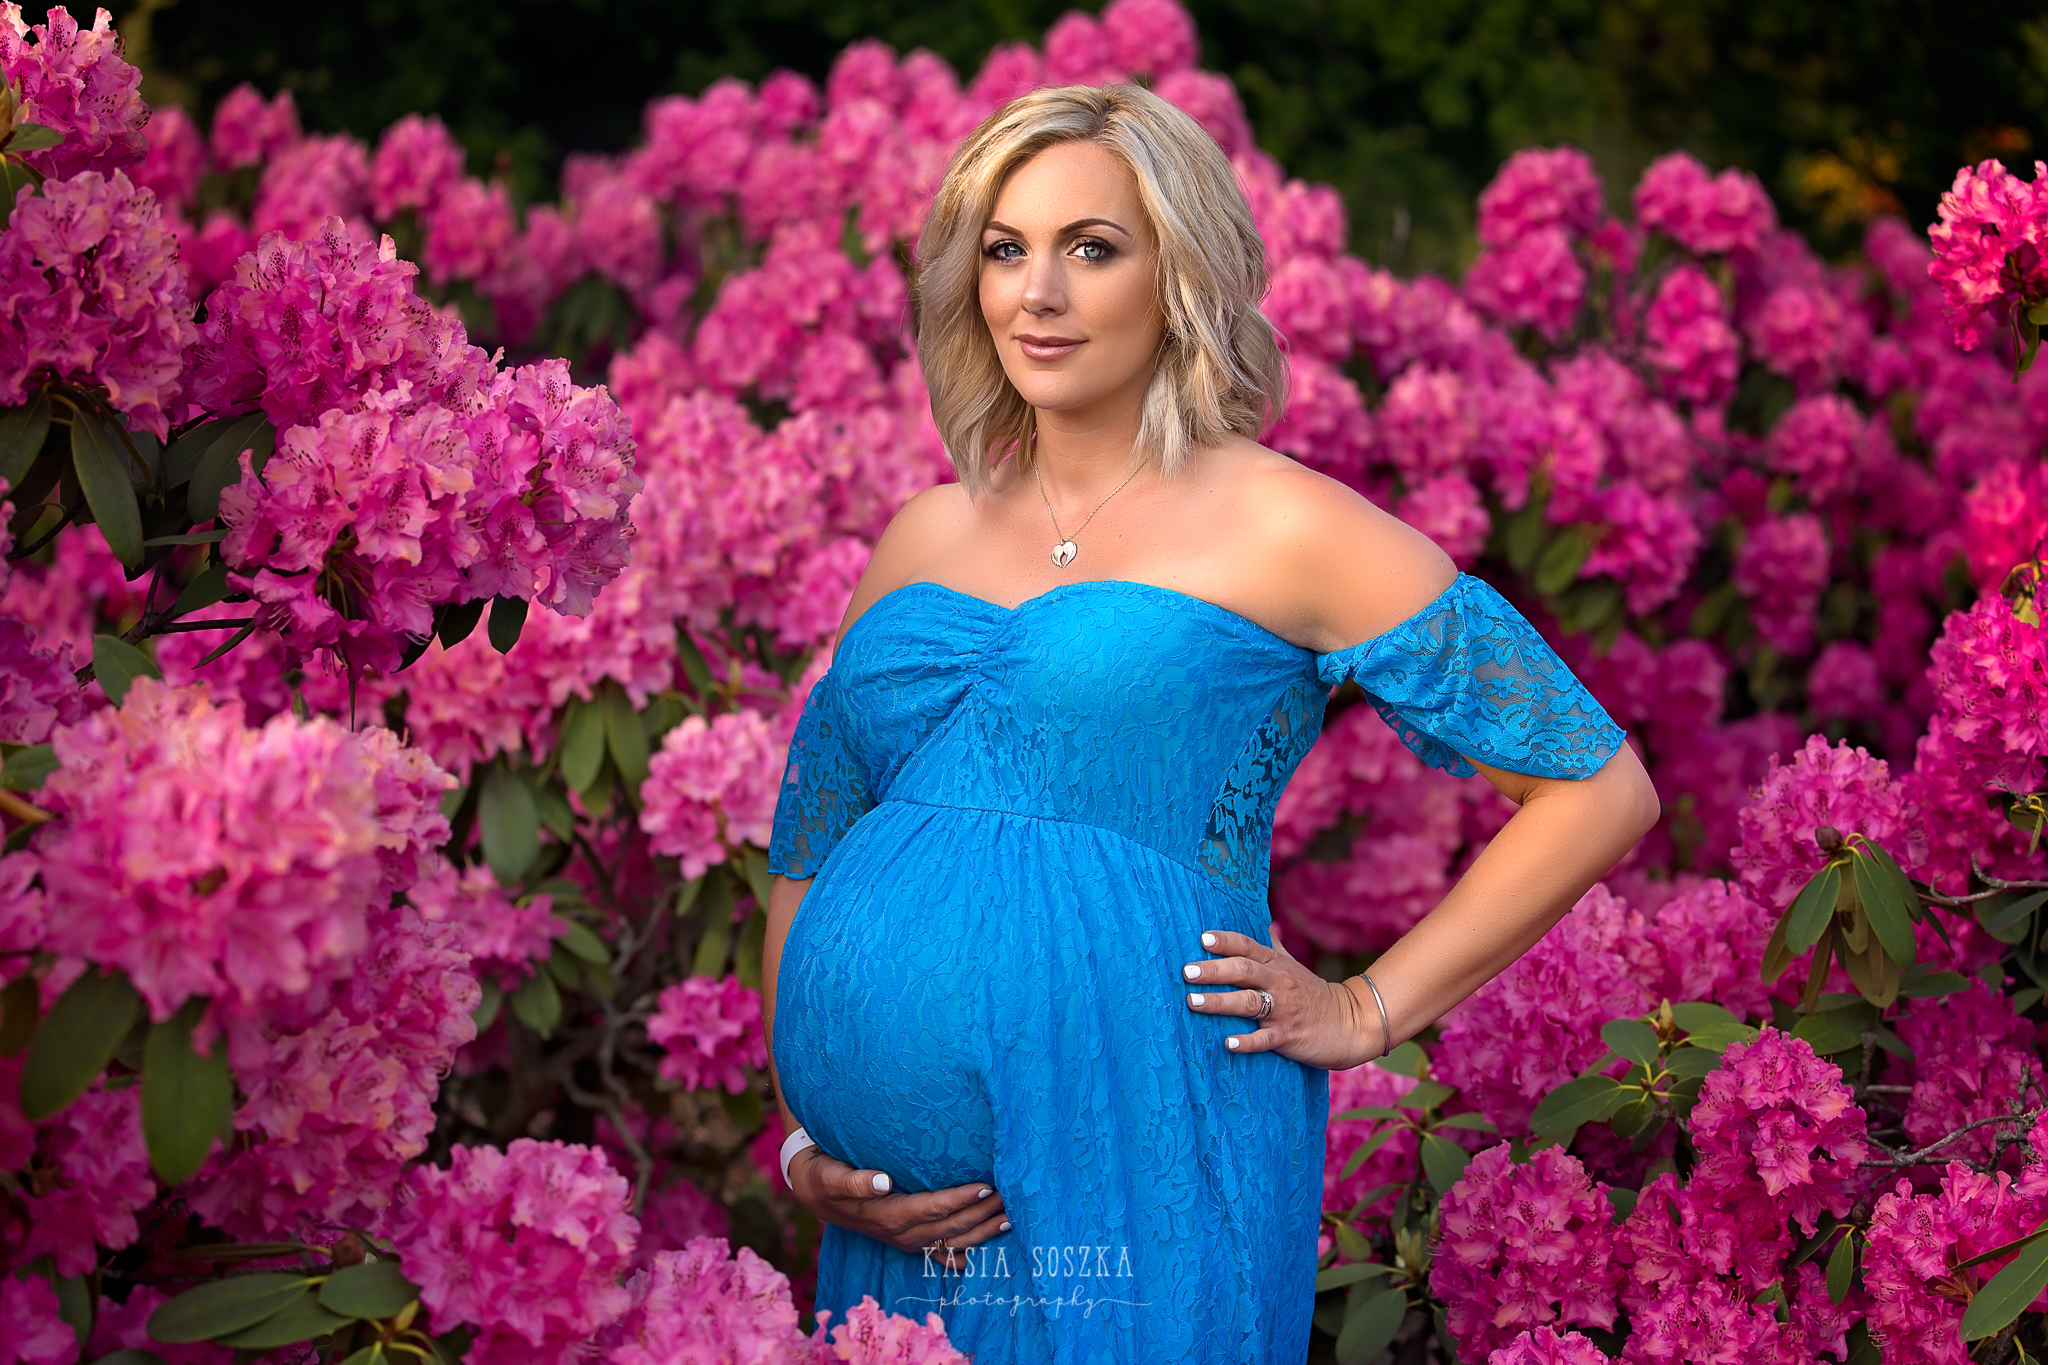 Maternity photography Yorkshire: beautiful blond expecting mother in a long blue dress standing by a pink rhododendron bush.